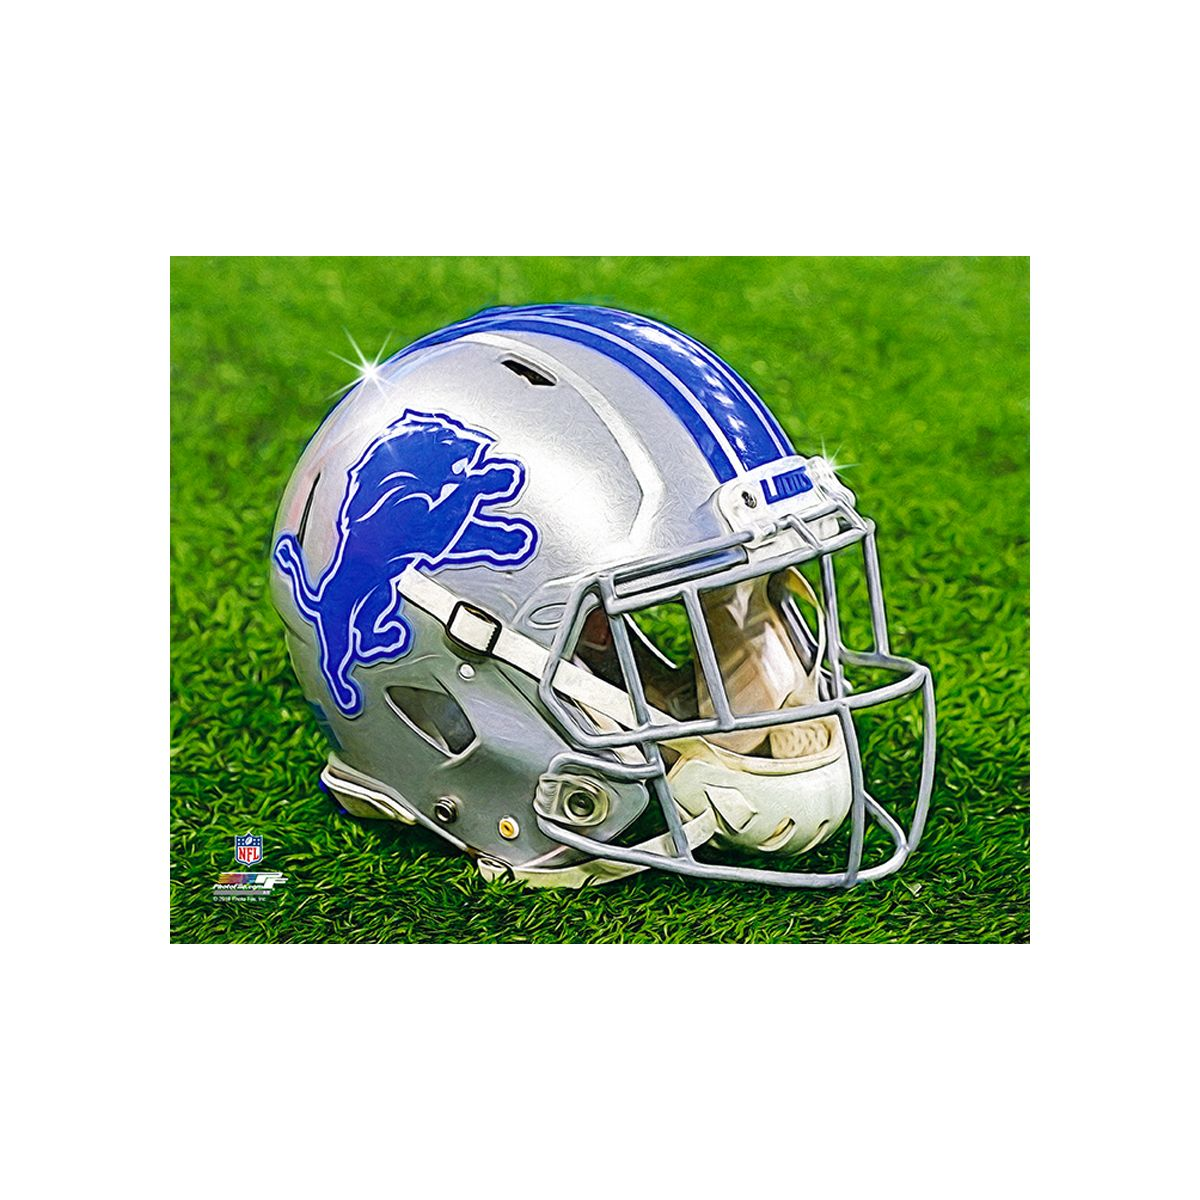 Canvas Art - Helmet in Grass - $89.00